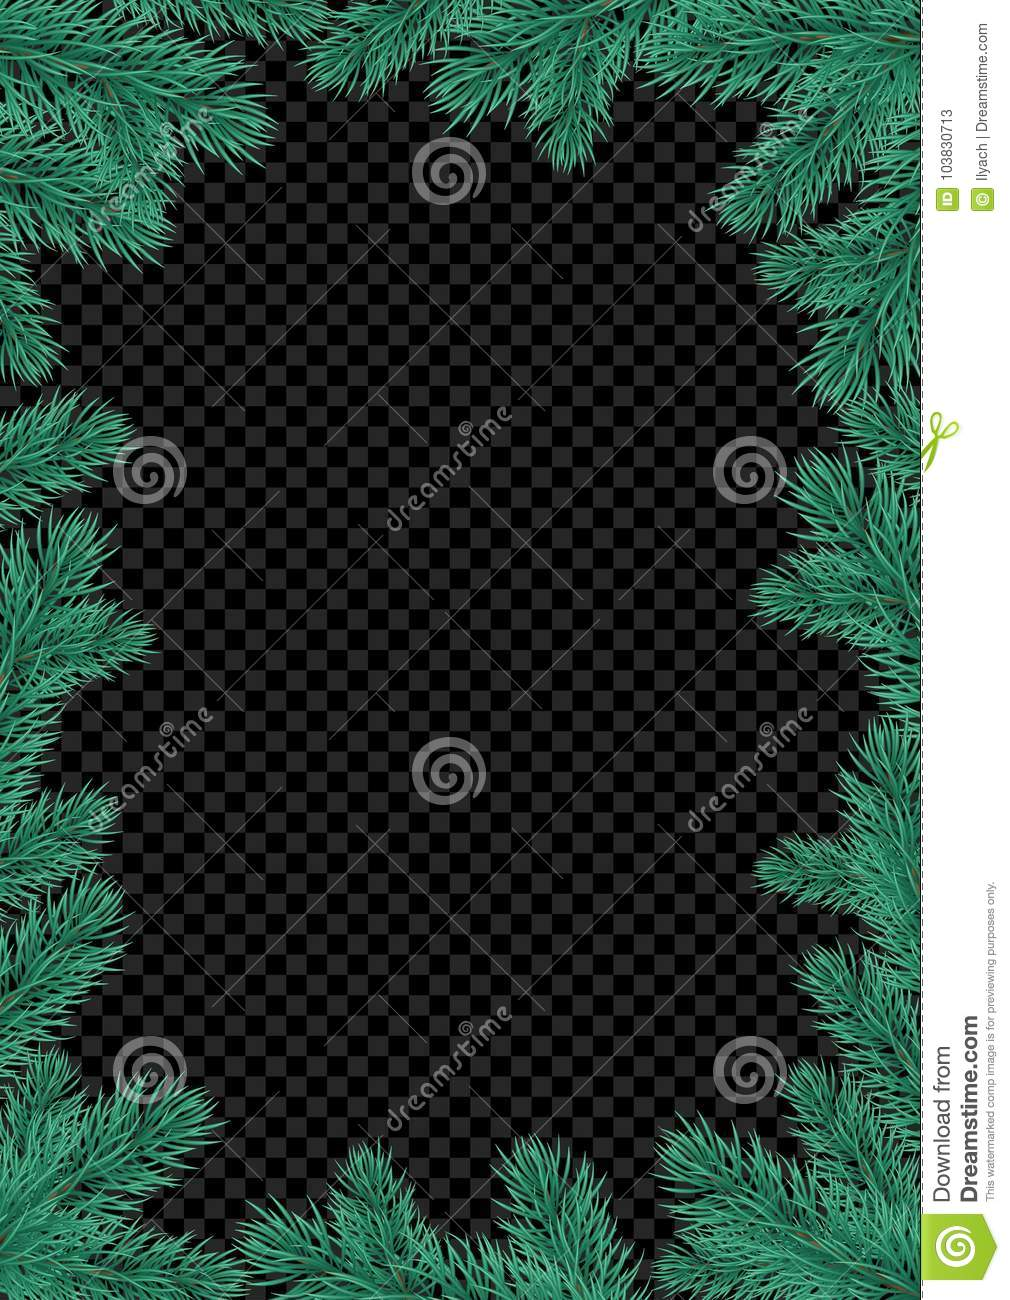 Christmas Holiday Greeting Card Background Template Of New Year Fir